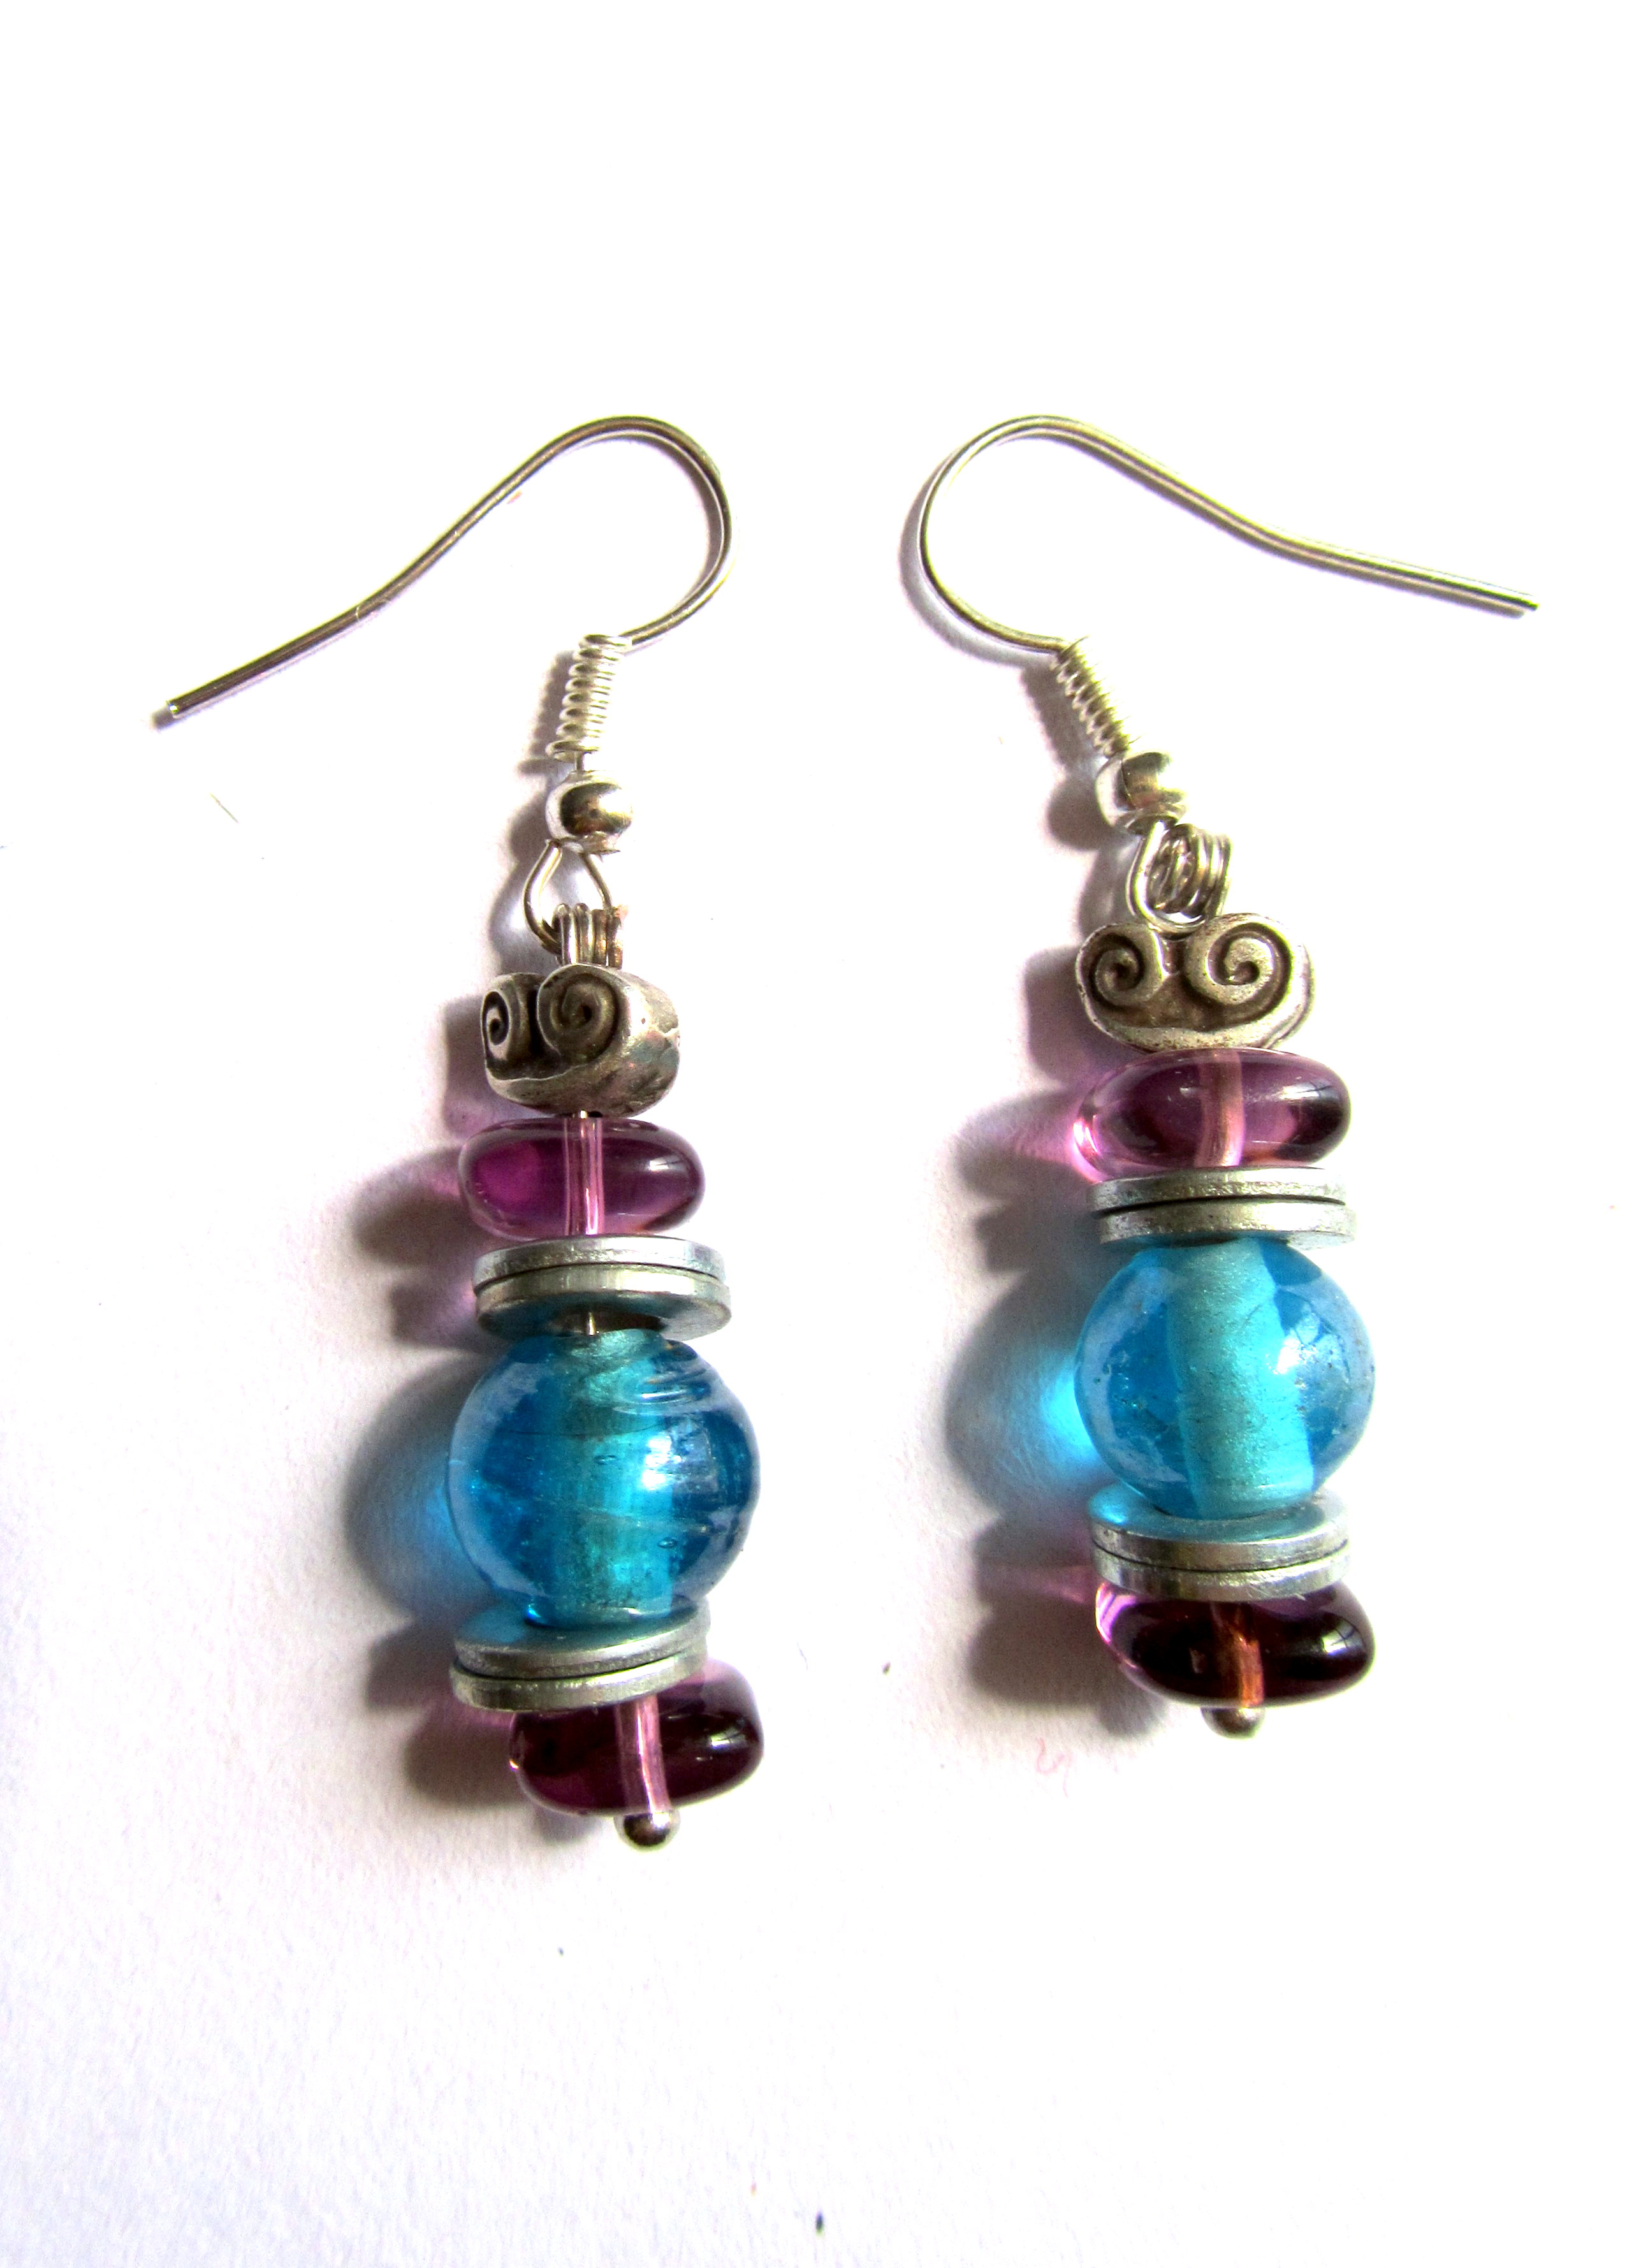 Earrings of colored glass